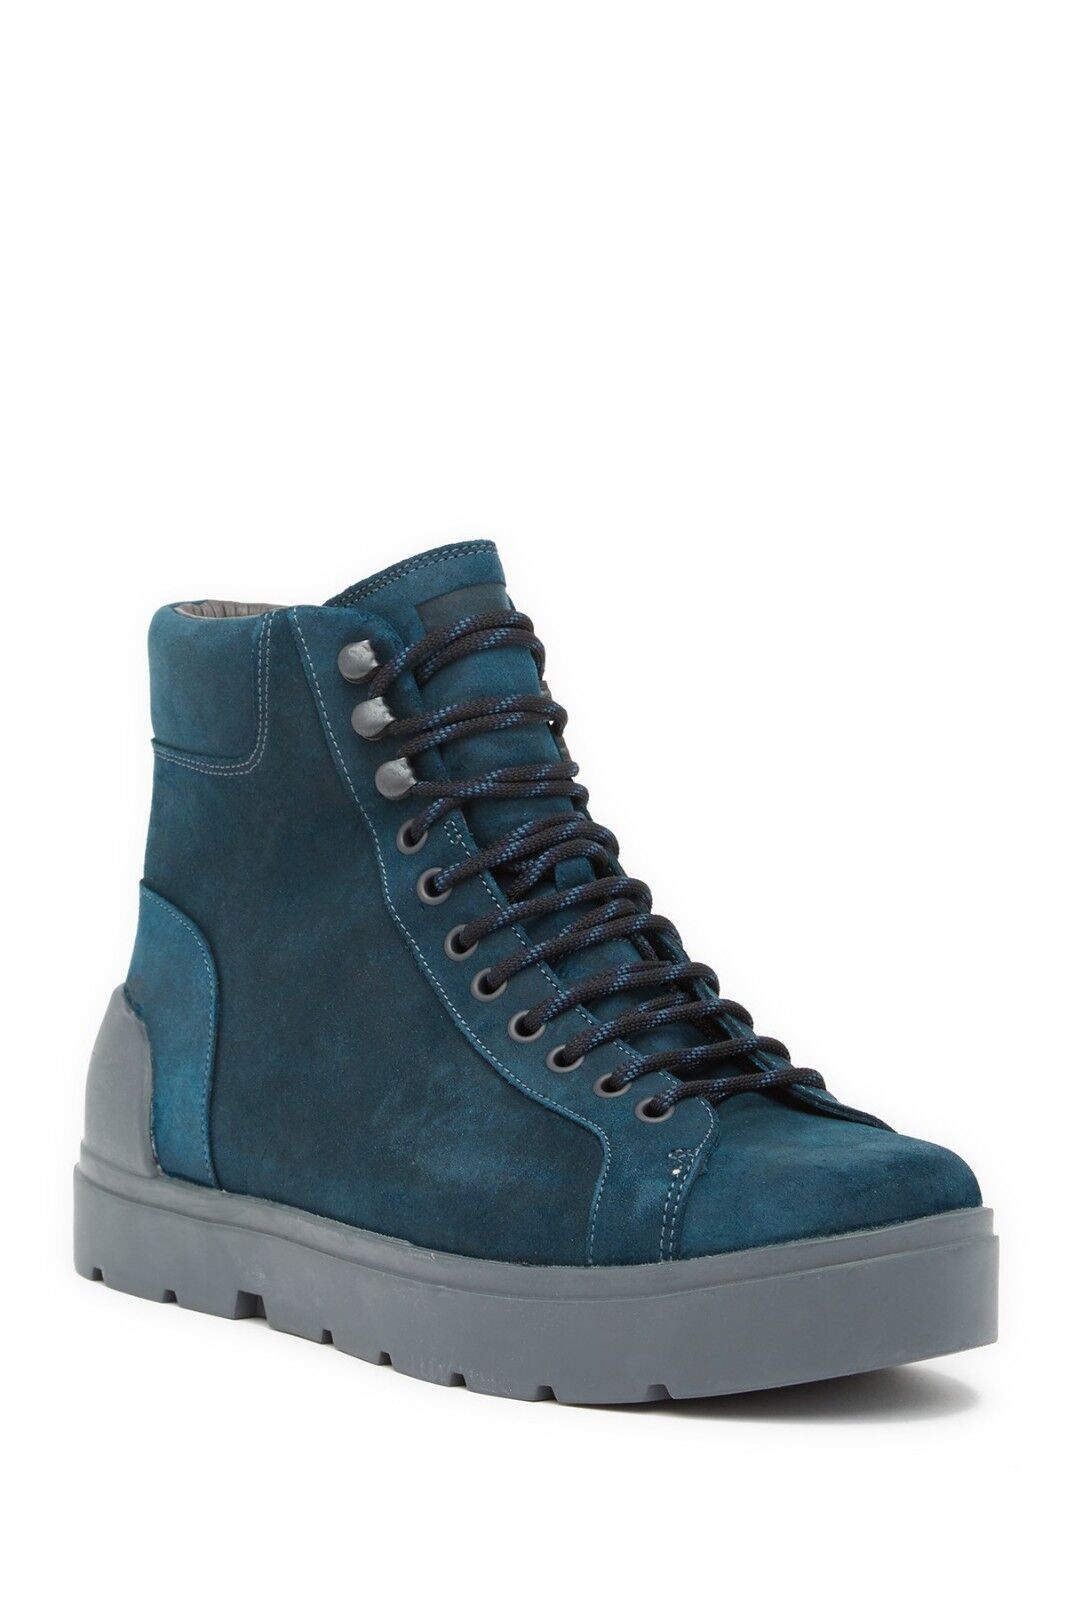 b4c747c924ce0 NEW CAMPER Vintar Lug Boot, Boot, Boot, bluee Green Leather, Women ...